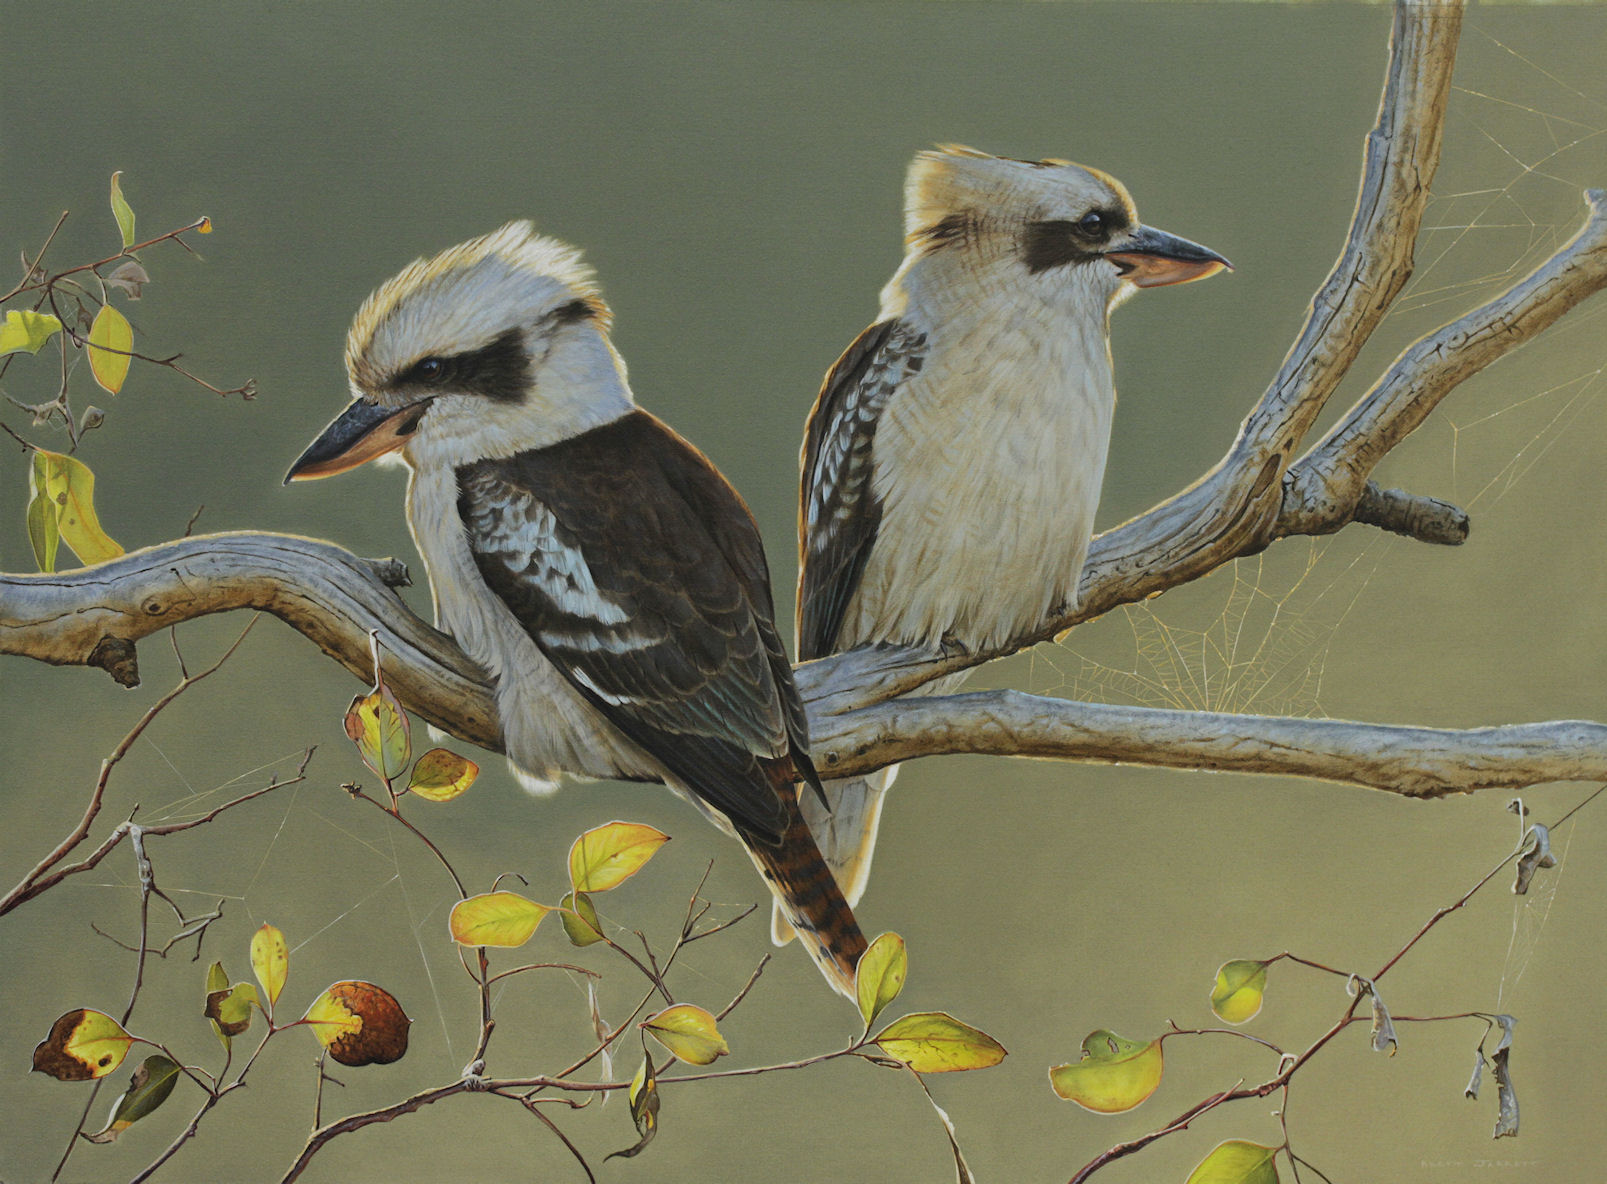 'The Golden Hour' Laughing Kookaburras -